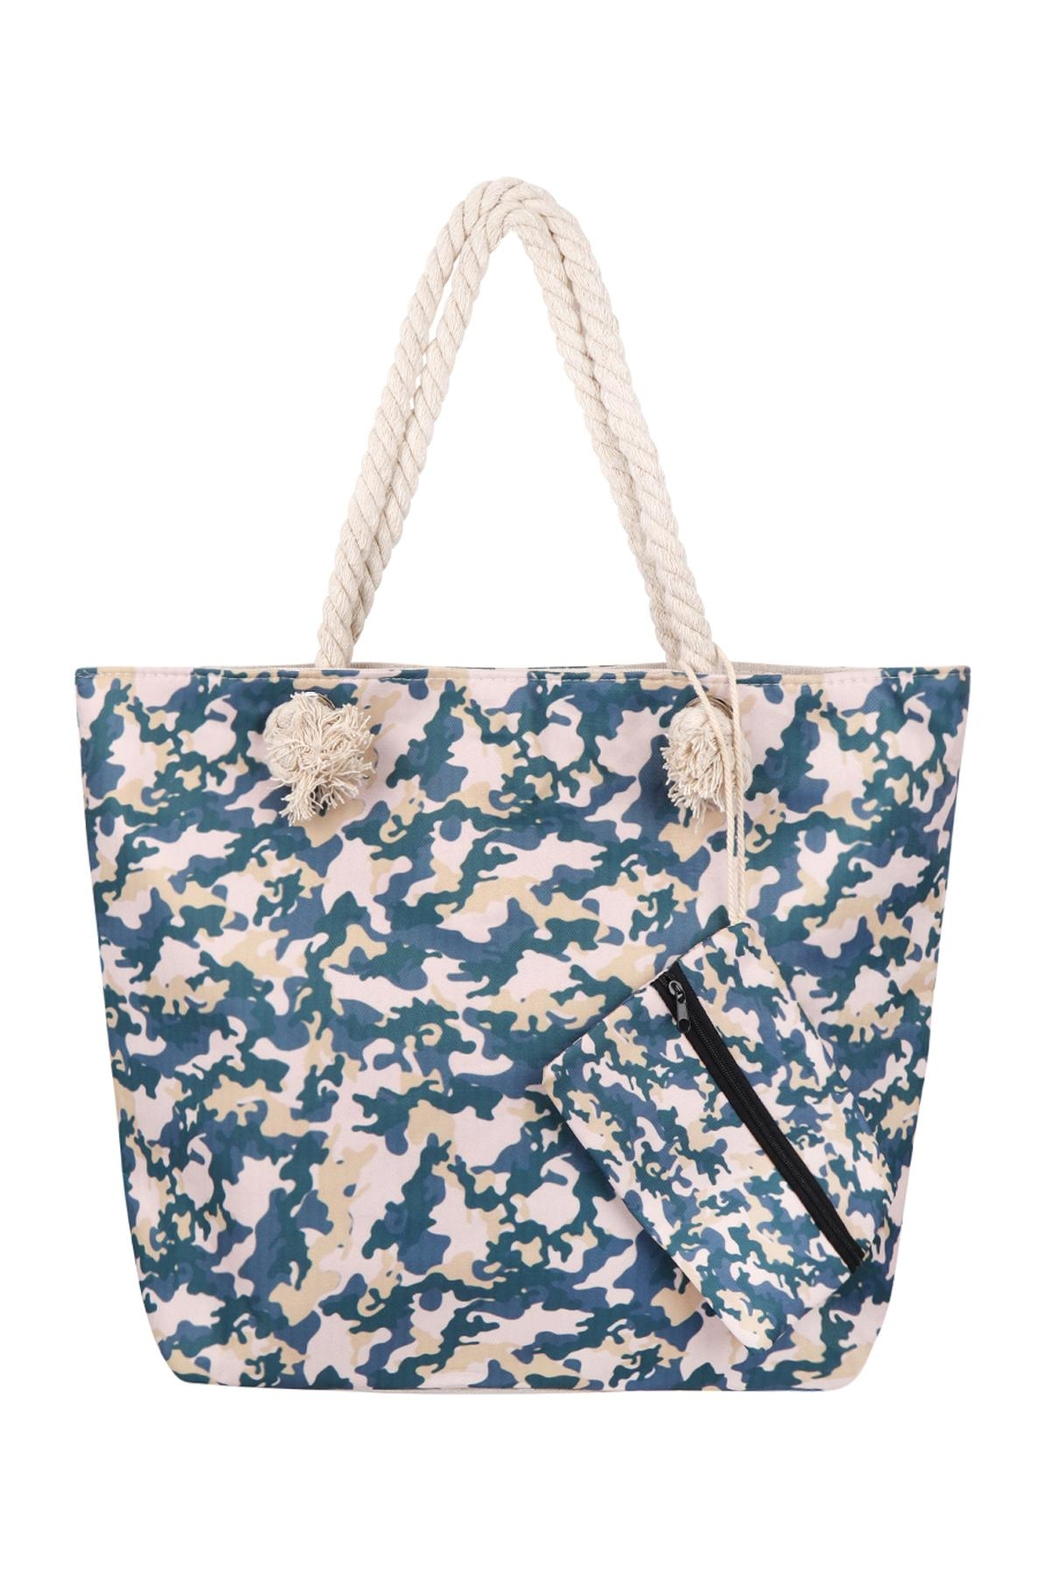 Riah Fashion Fashionable Camouflage-Digital-Printed-Tote-Bag-W/-Matching-Wallet - Main Image